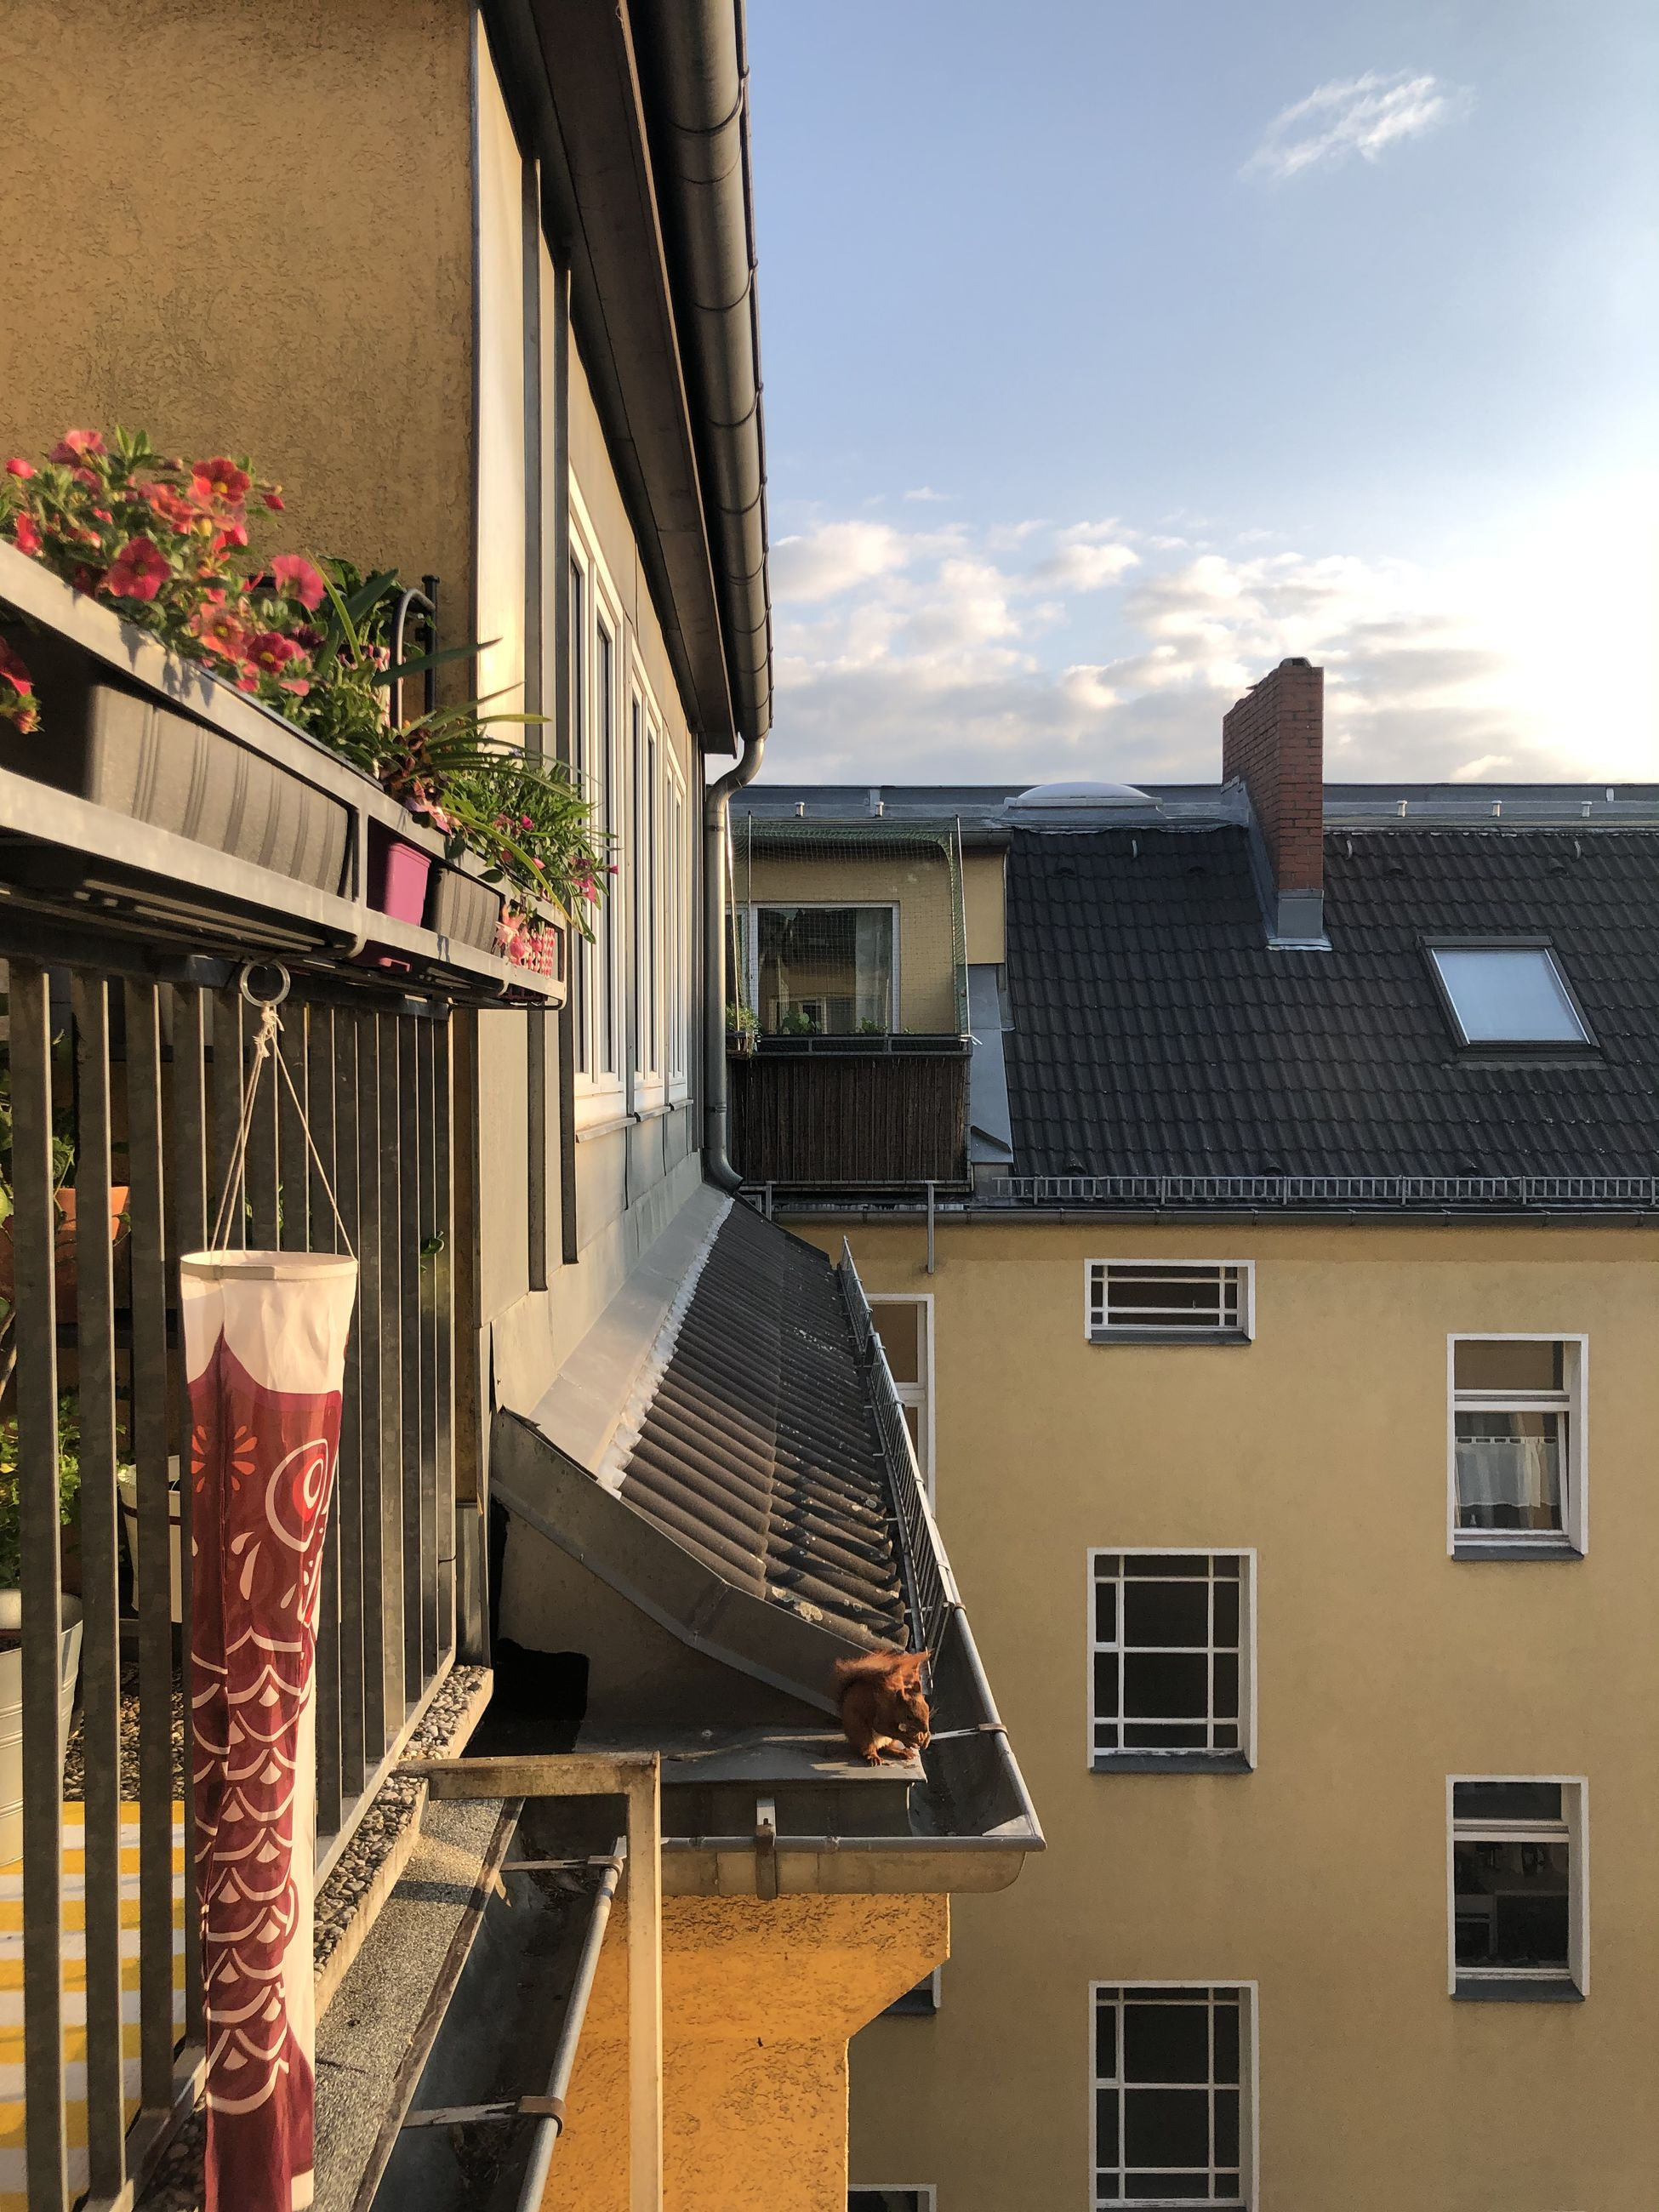 building exterior, architecture, built structure, window, residential district, building, sky, nature, city, house, day, no people, outdoors, sunlight, cloud - sky, balcony, roof, apartment, low angle view, glass - material, window box